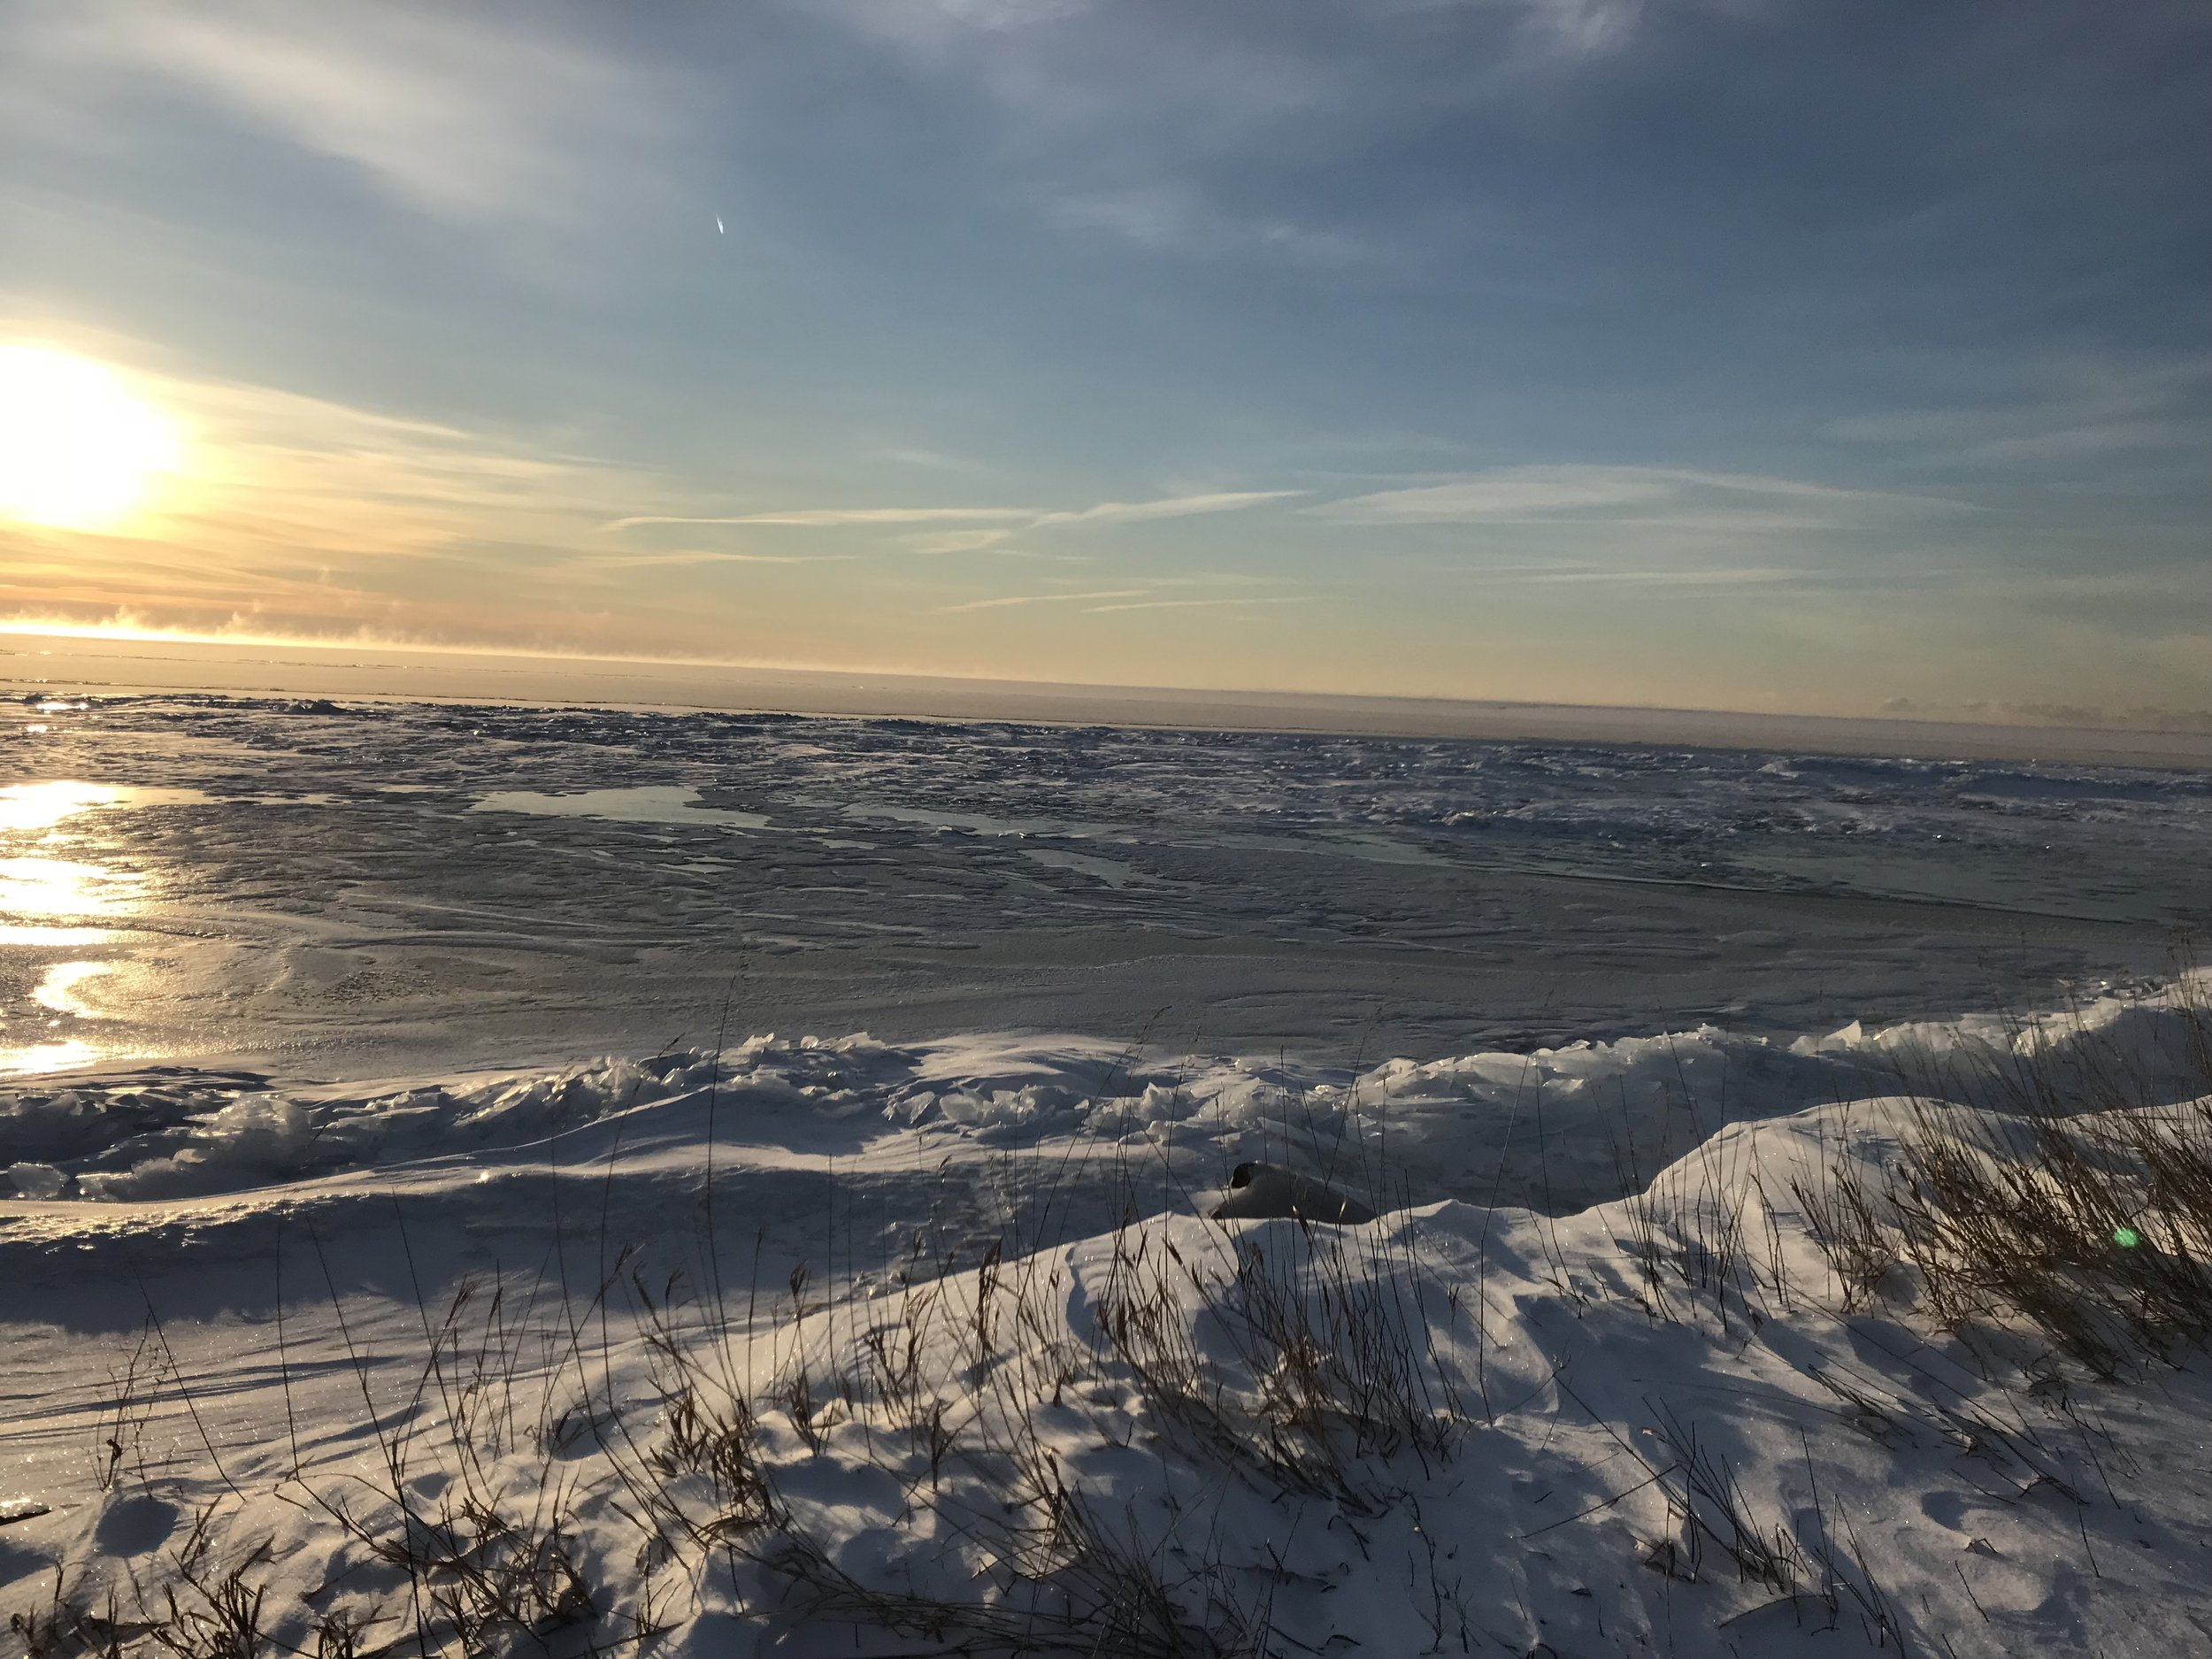 The sun rises over the frozen Lake Ontario.